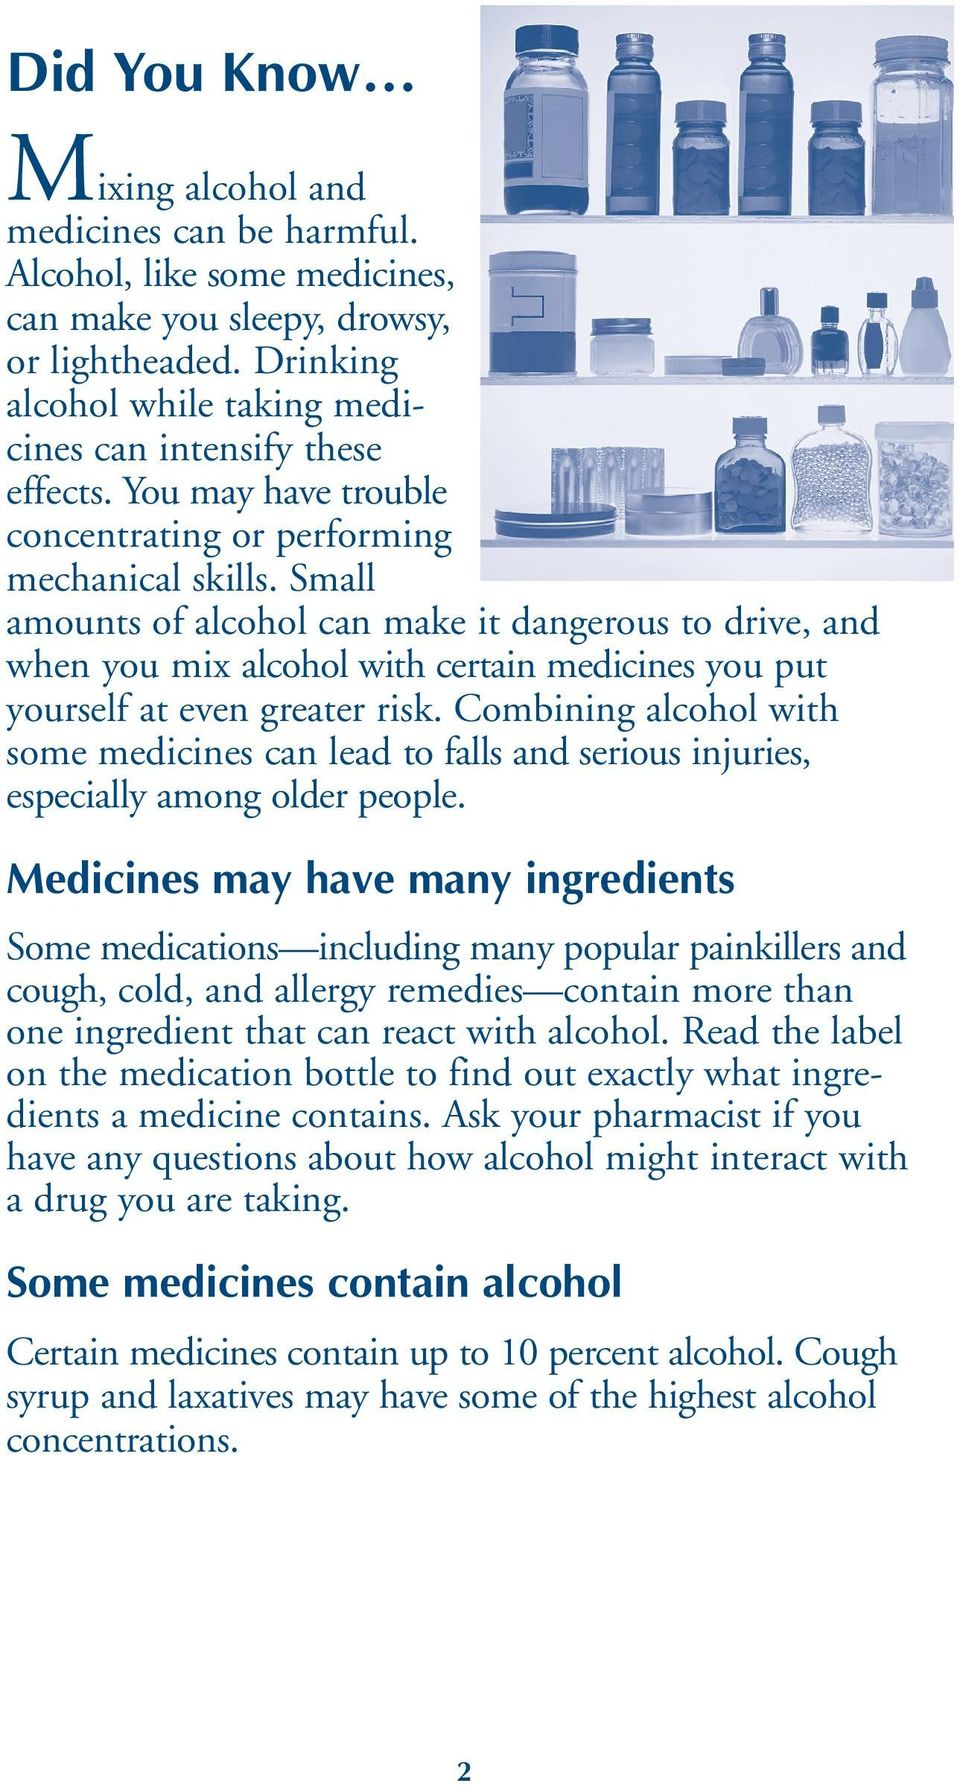 Harmful Interactions: Mixing Alcohol with Medicines - PDF